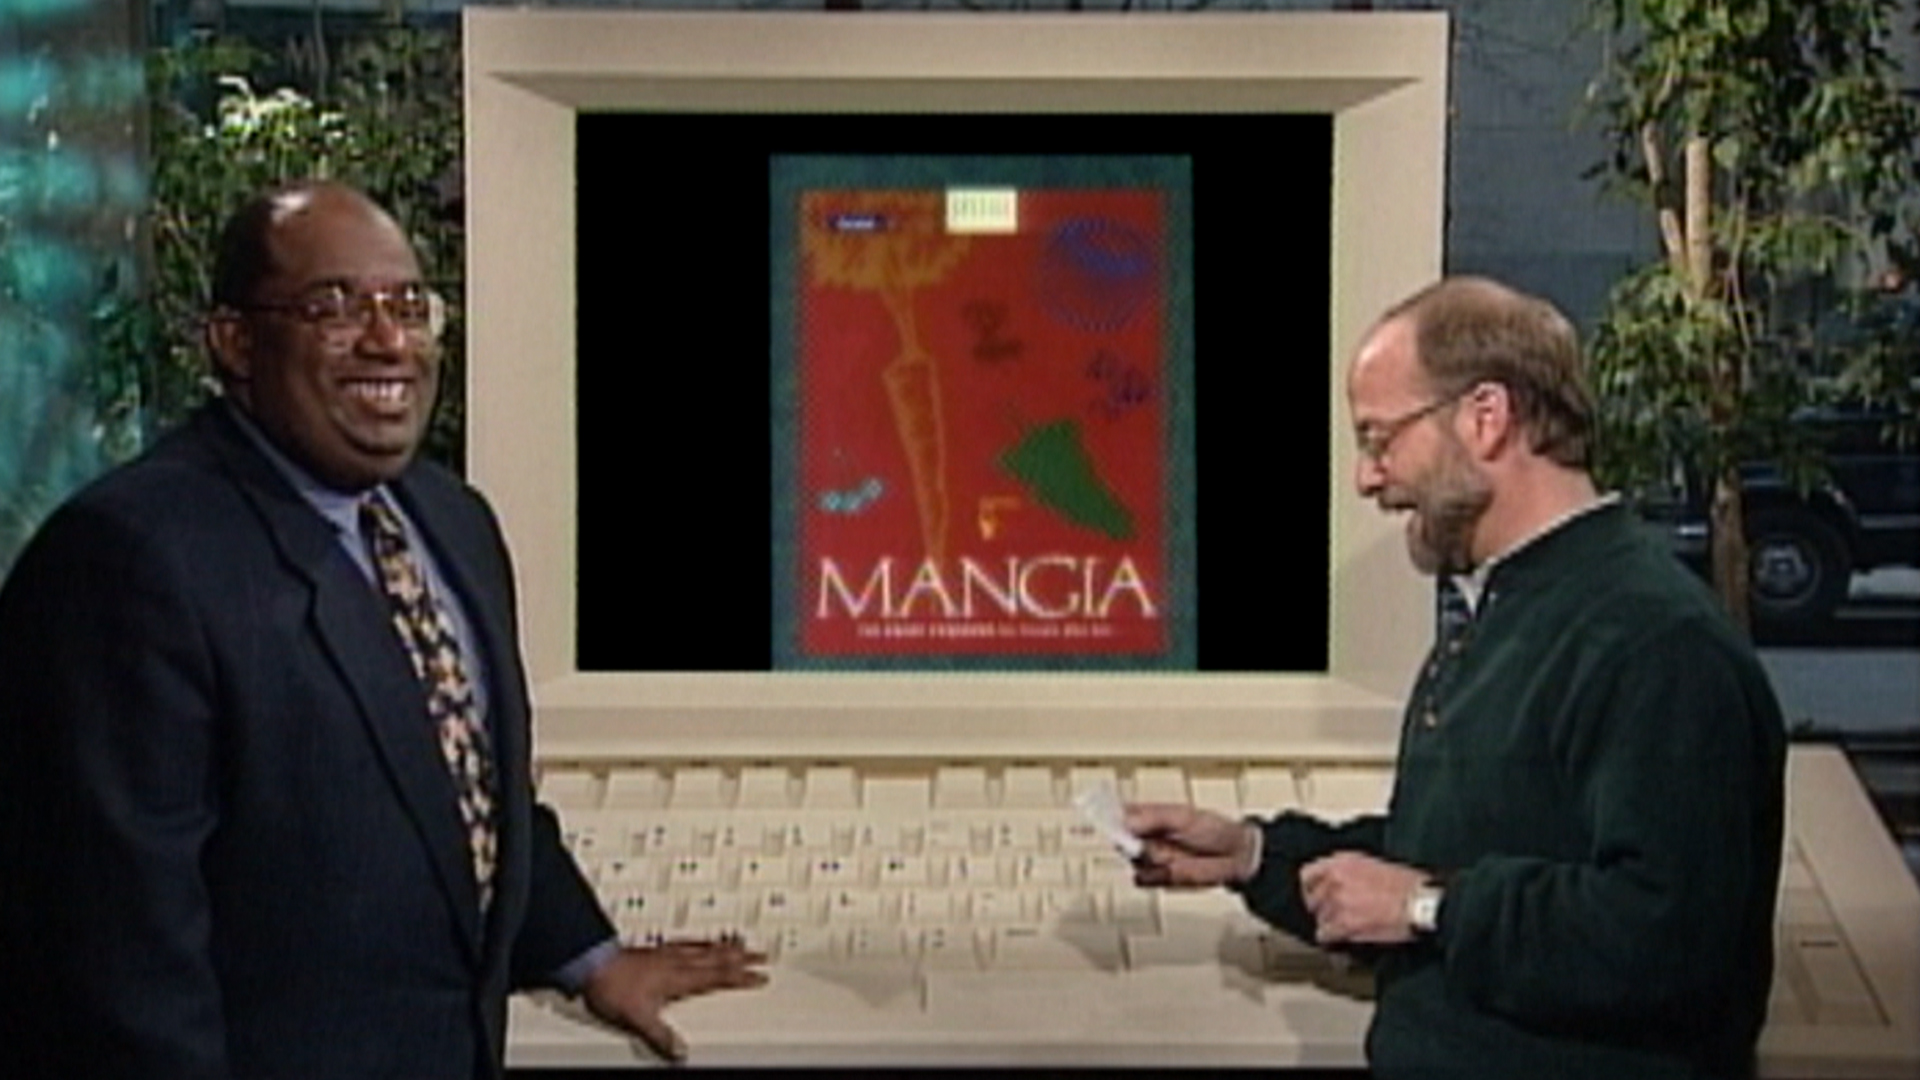 Al Roker takes a look at high-tech cooking in '95: Recipes on floppy disks!